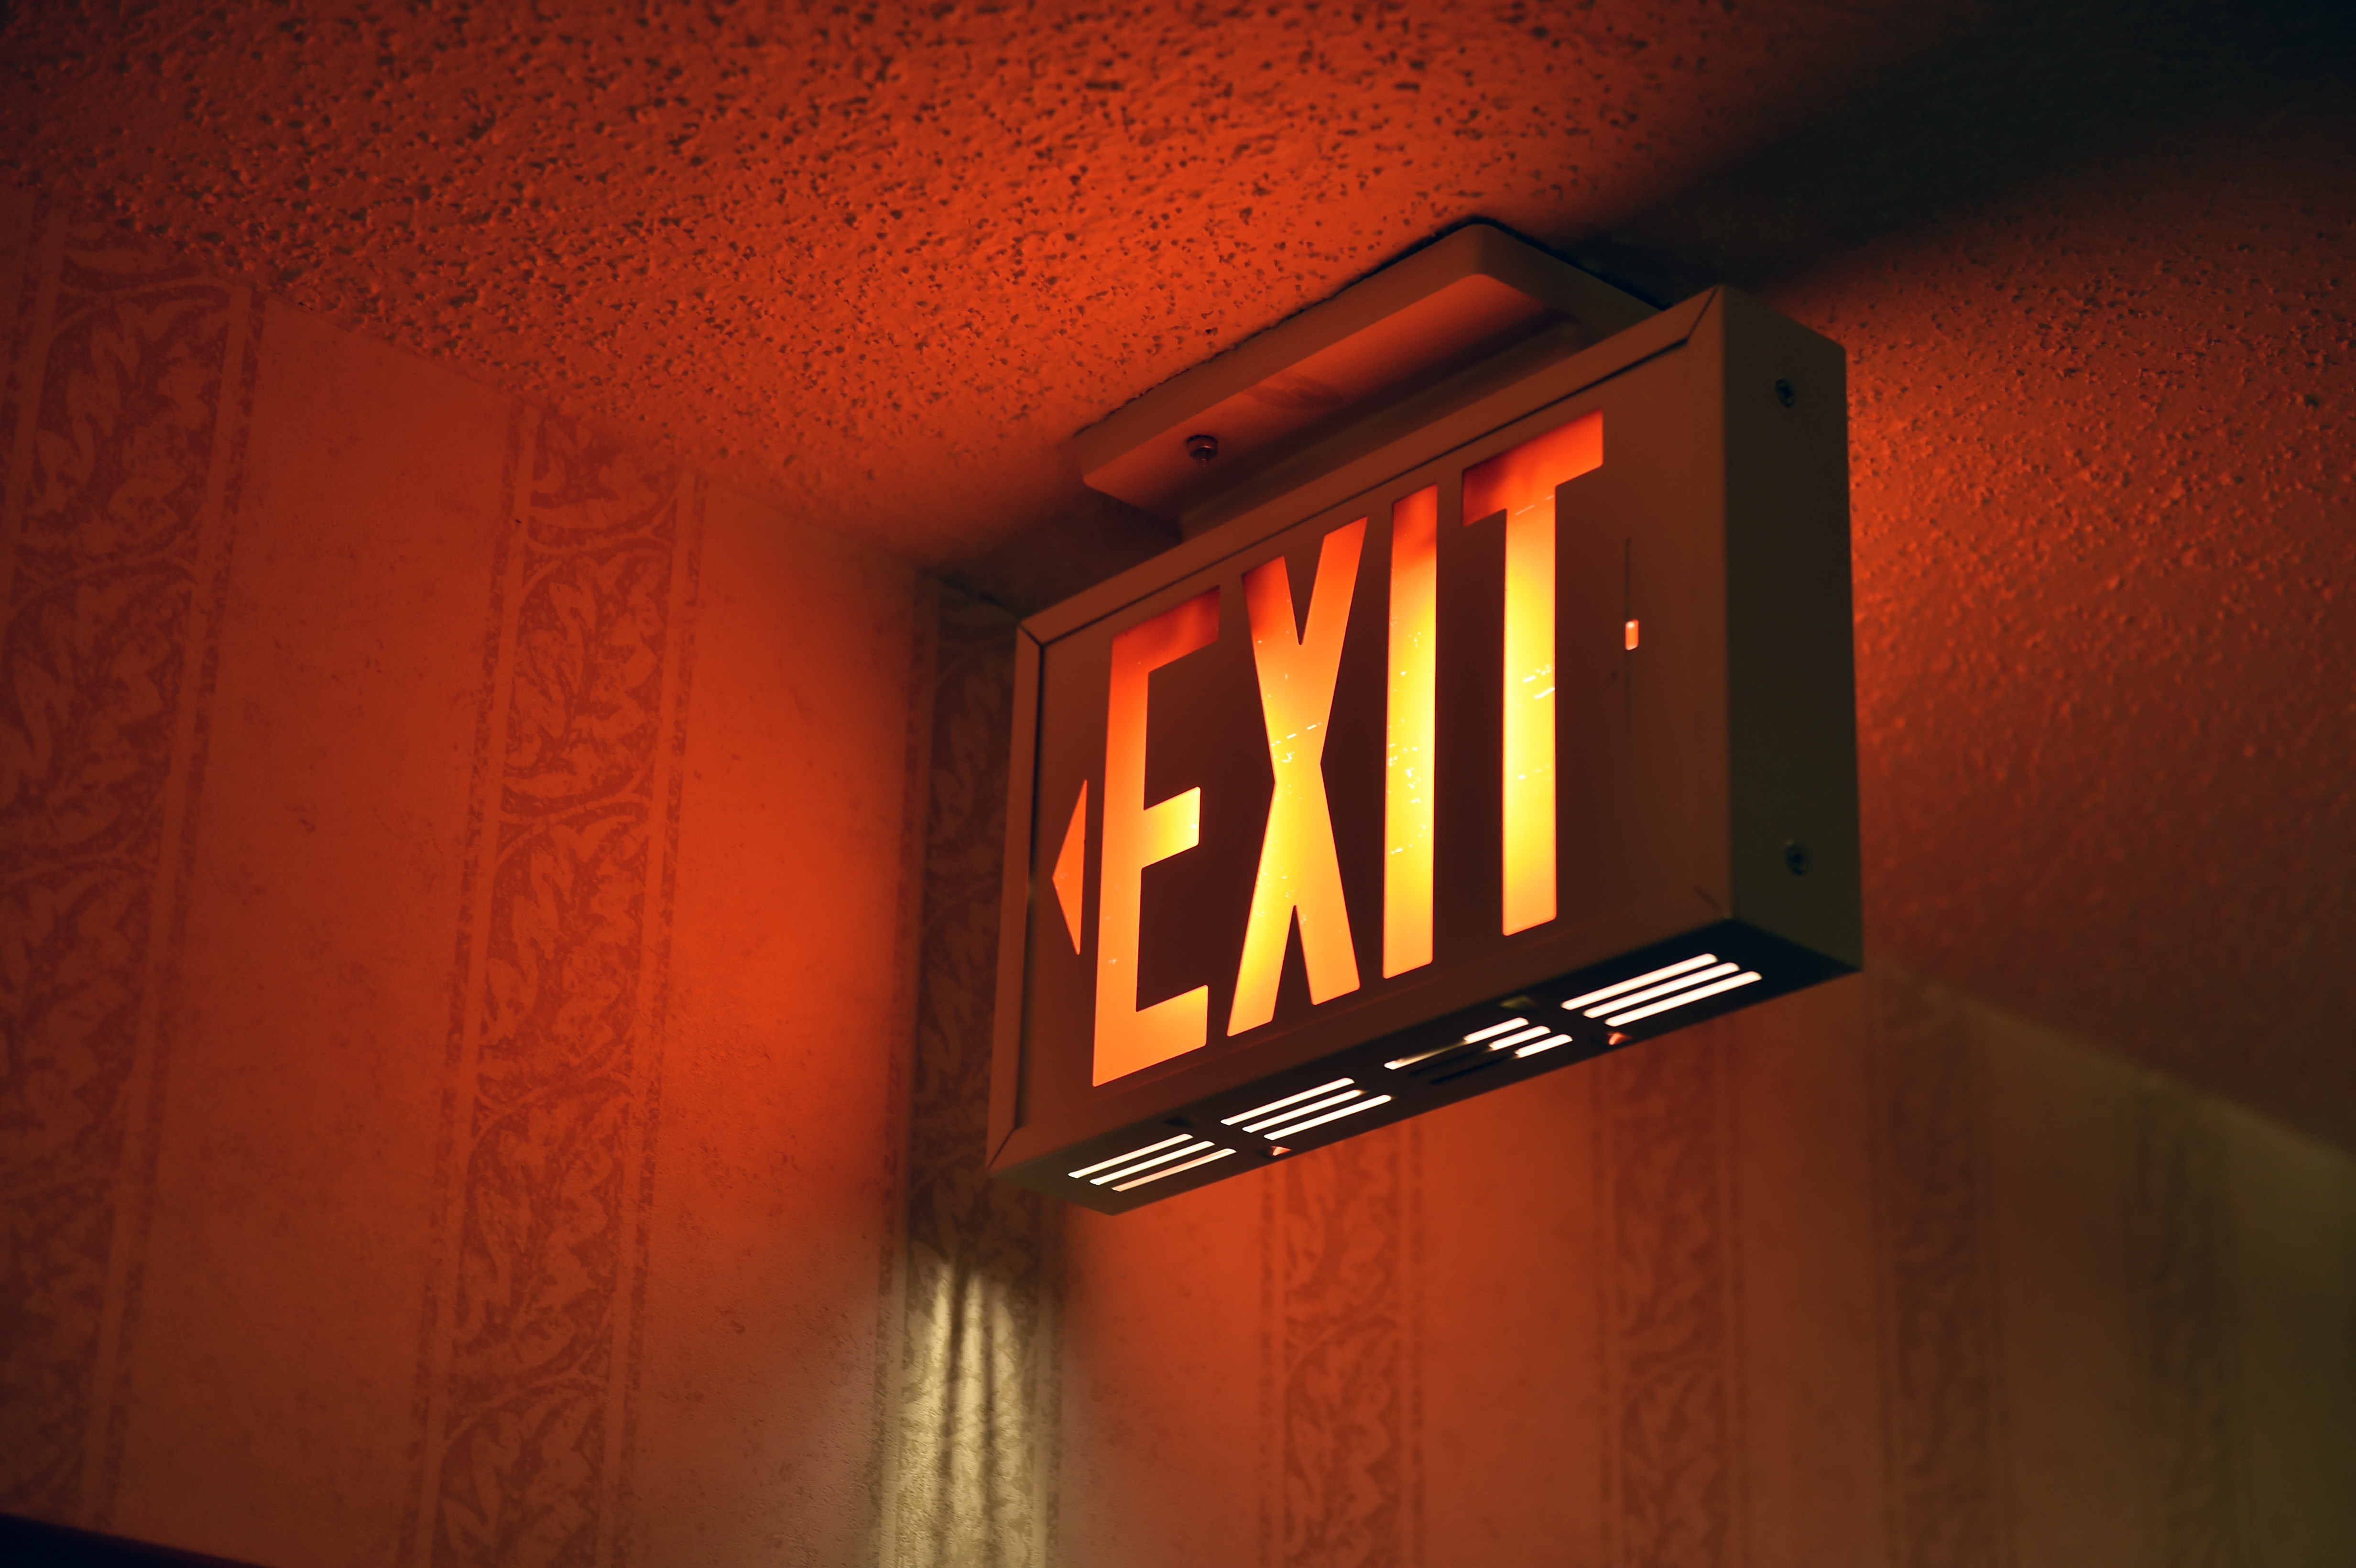 Emergency fire exit sign lit up